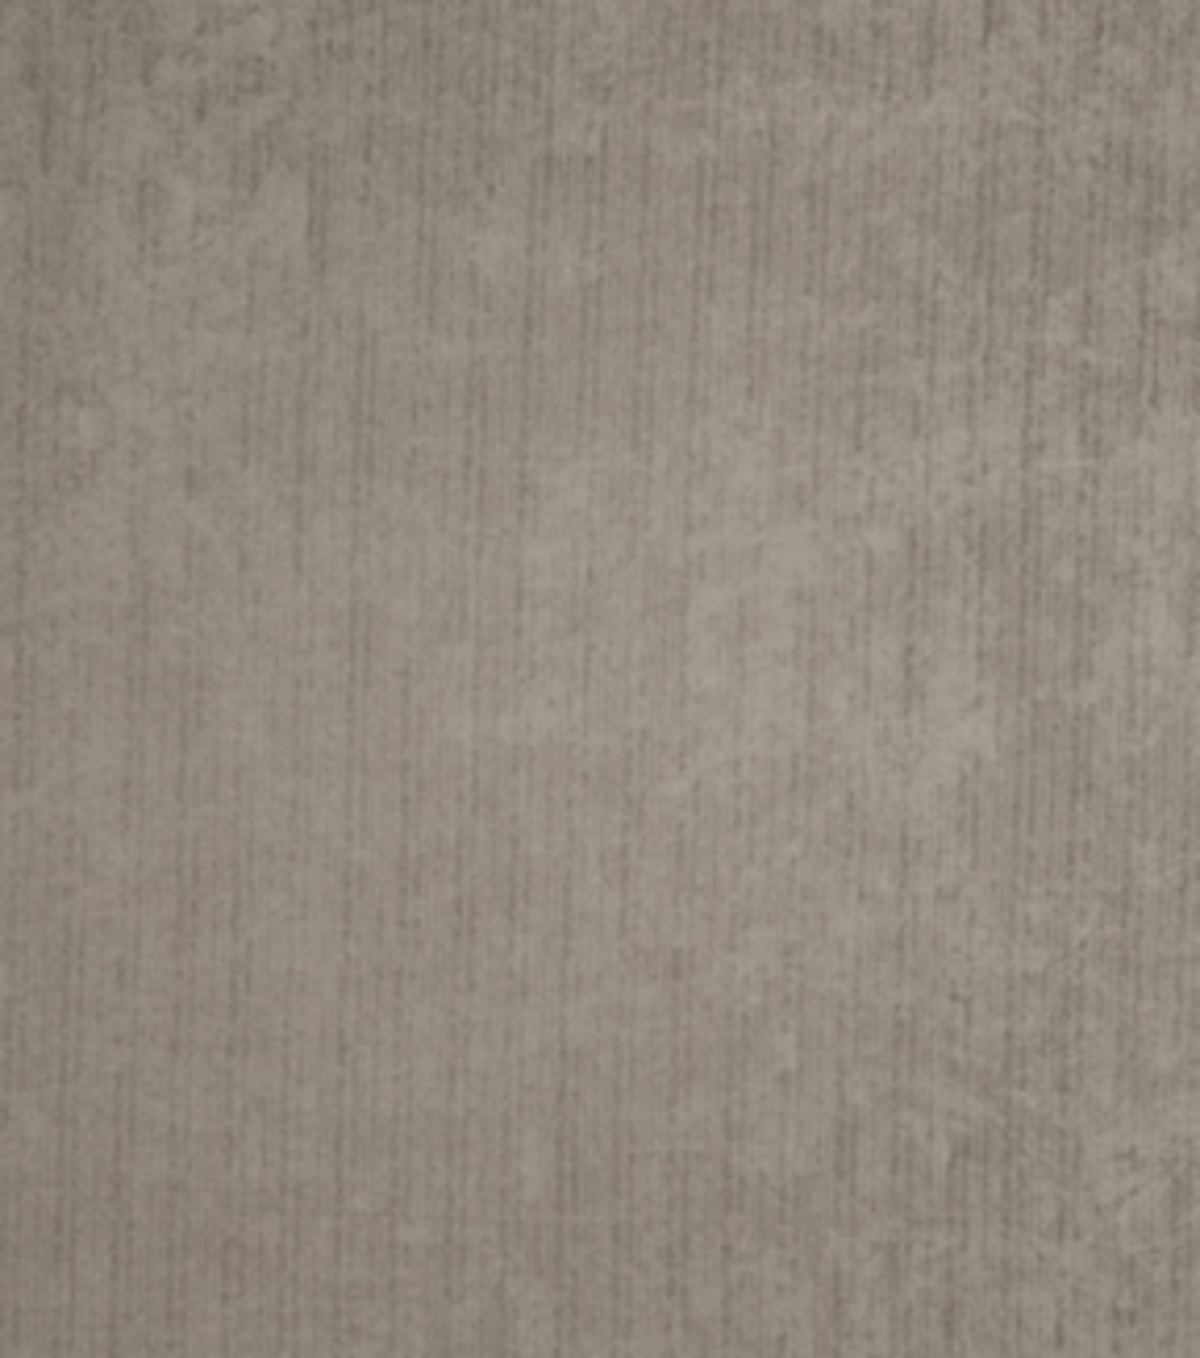 Home Decor 8\u0022x8\u0022 Fabric Swatch-Eaton Square Outdoor-Velvet   Pewter